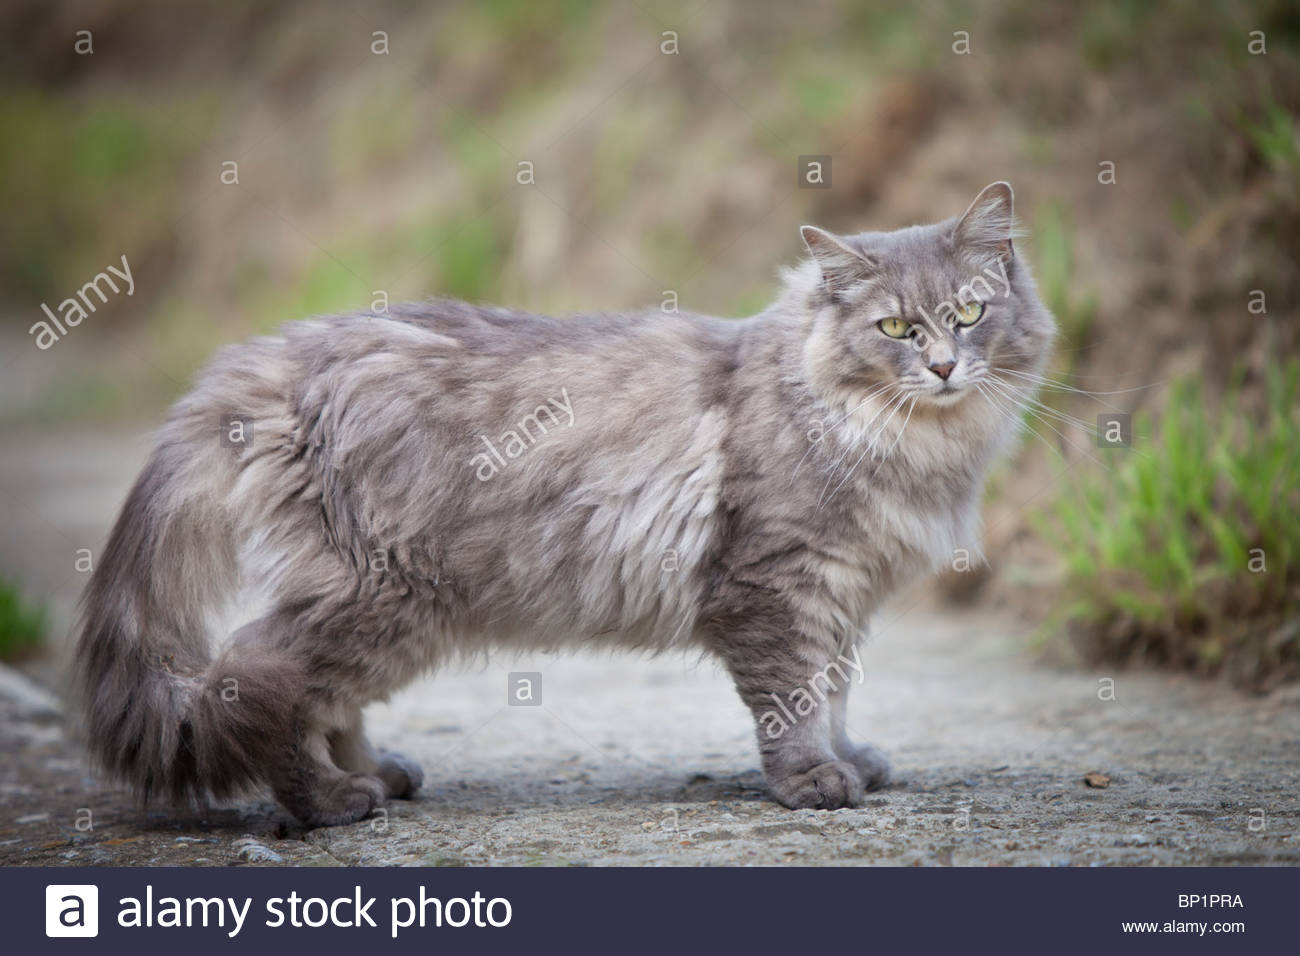 Image A long haired smoky grey cat with light green eyes stands